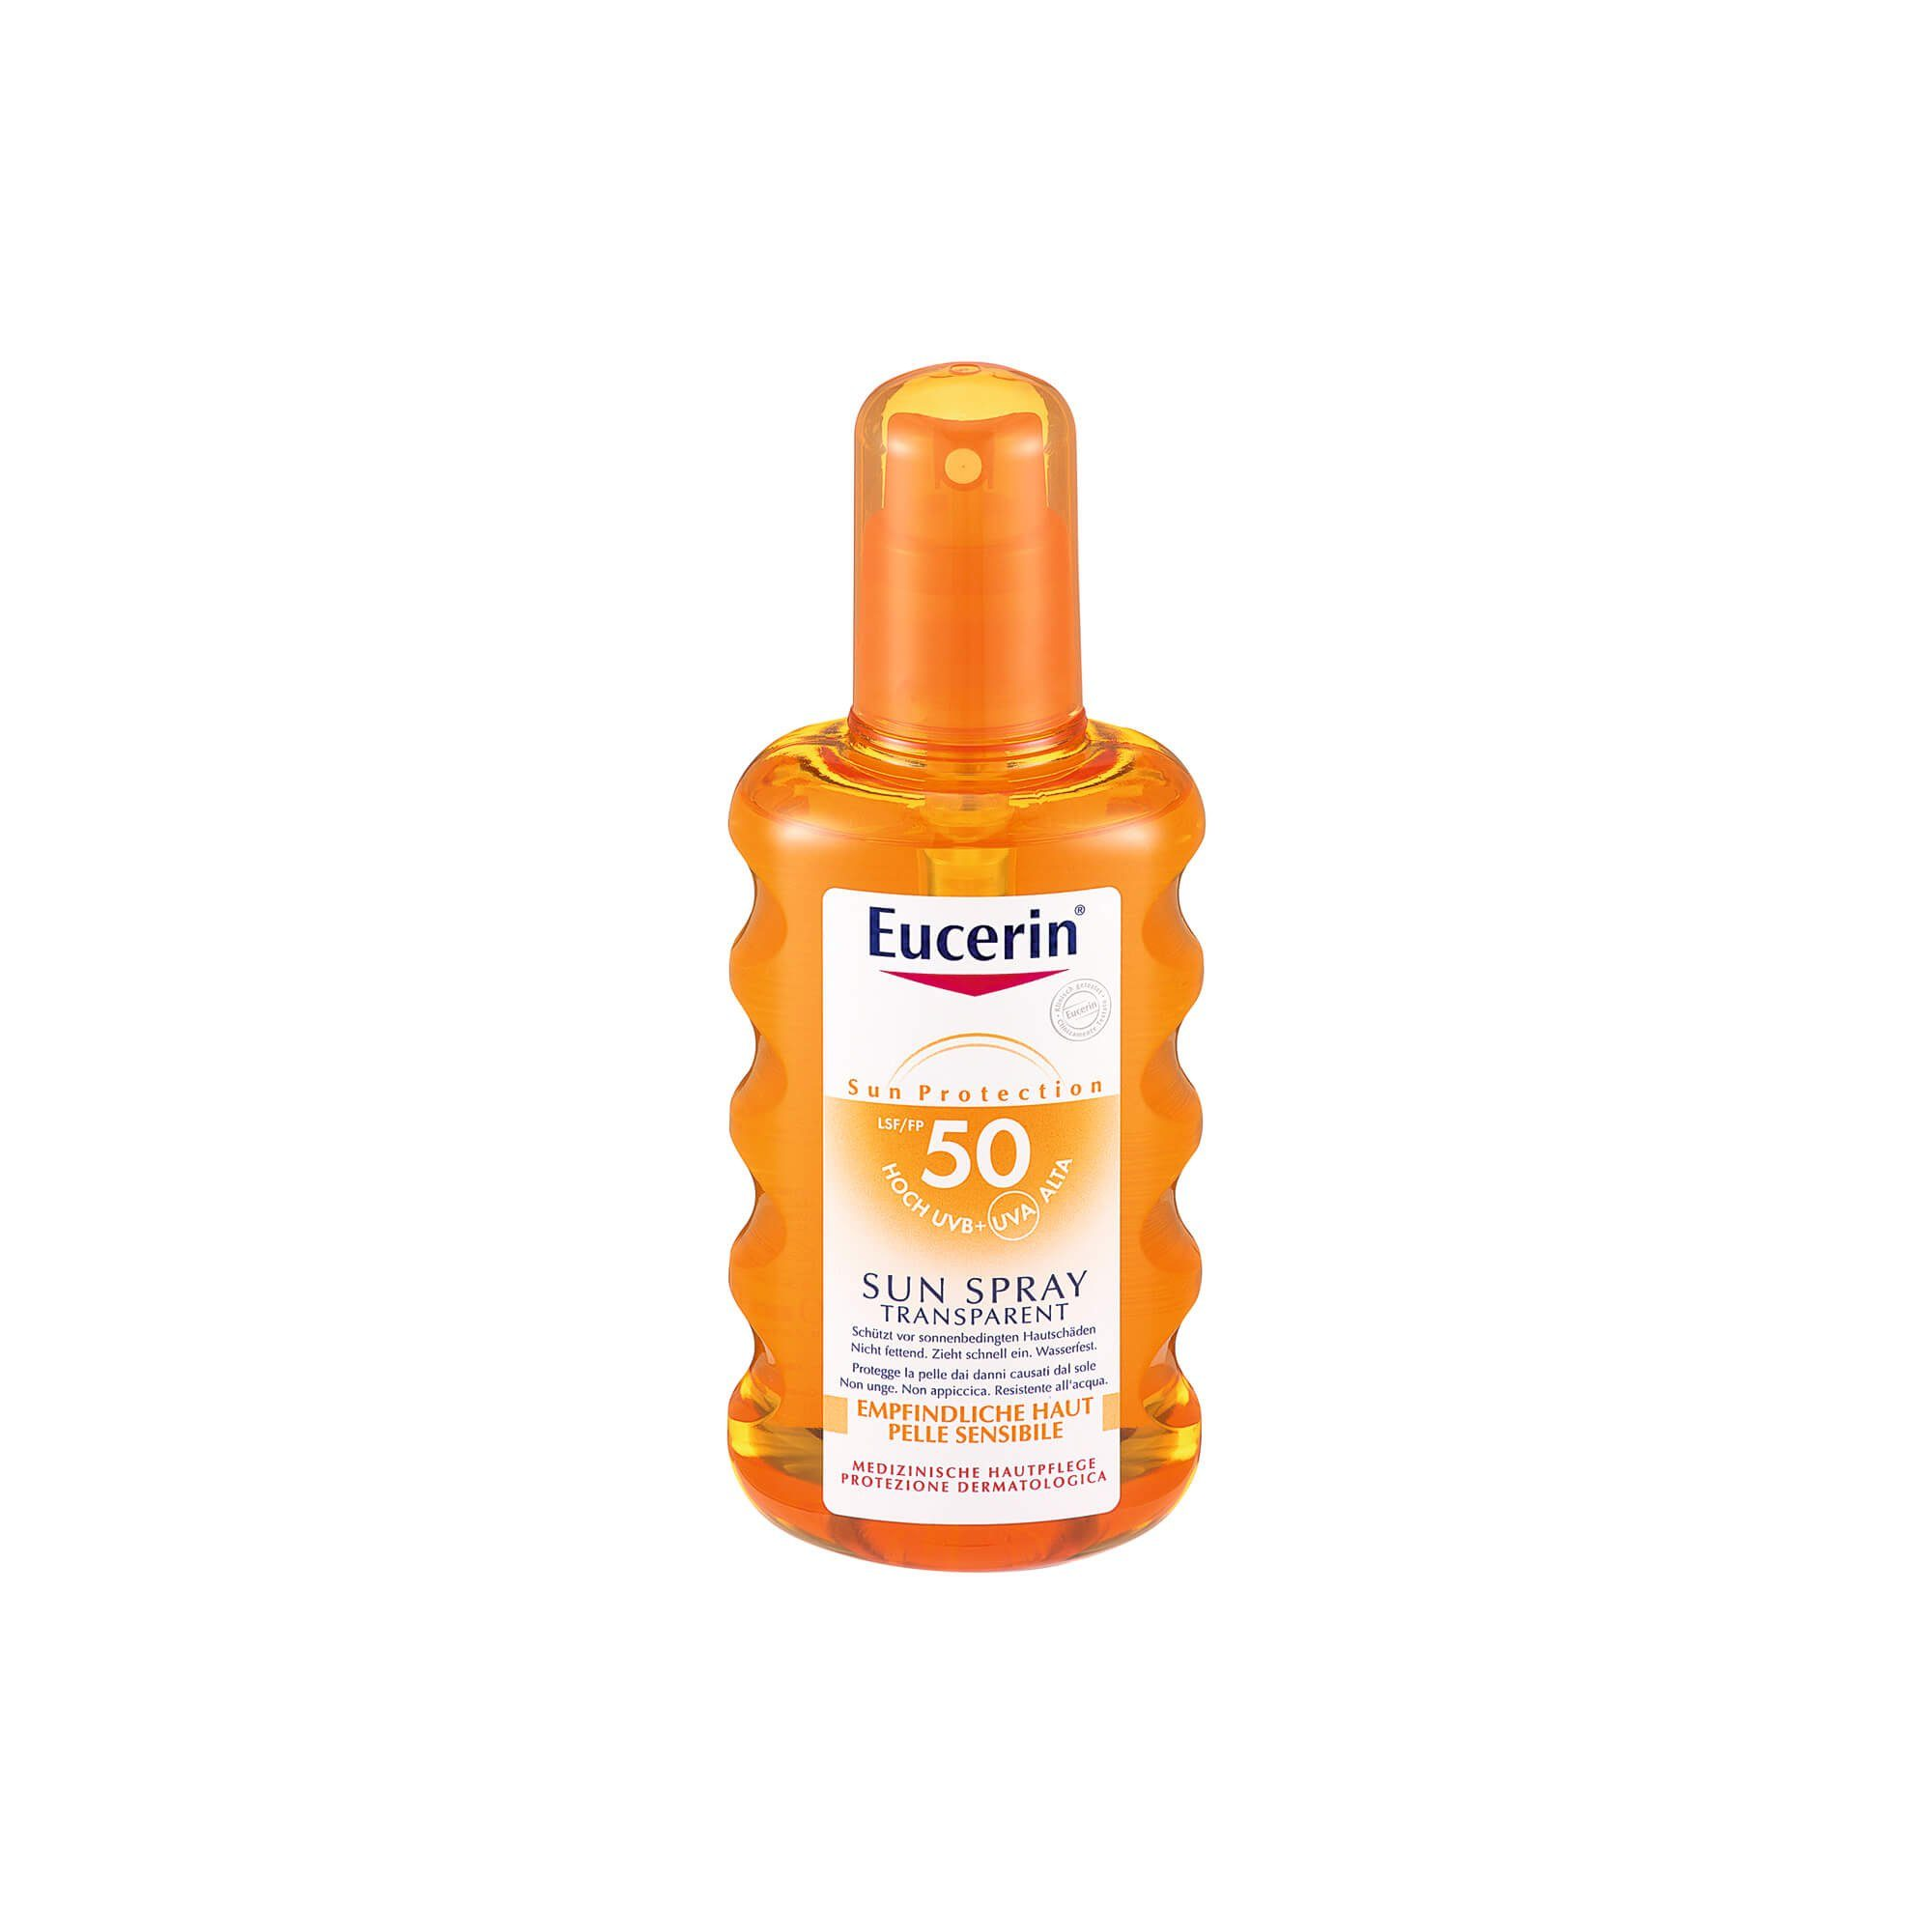 Eucerin Sun Transparent Spray LSF 50 , 200 ml